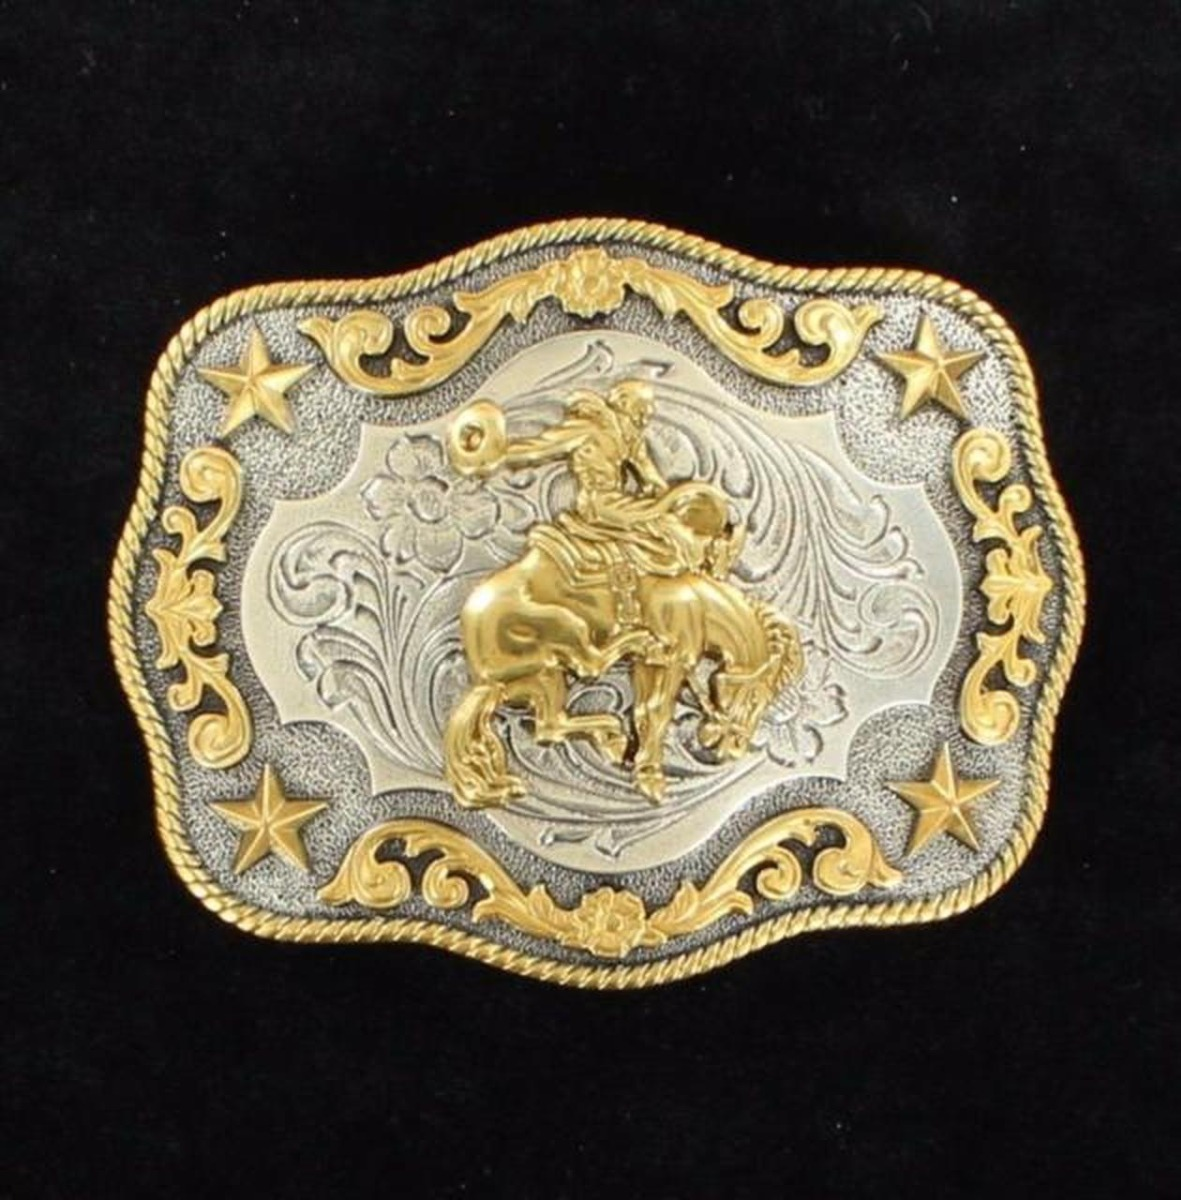 Saddle Bronc Belt Buckle 3798708-0